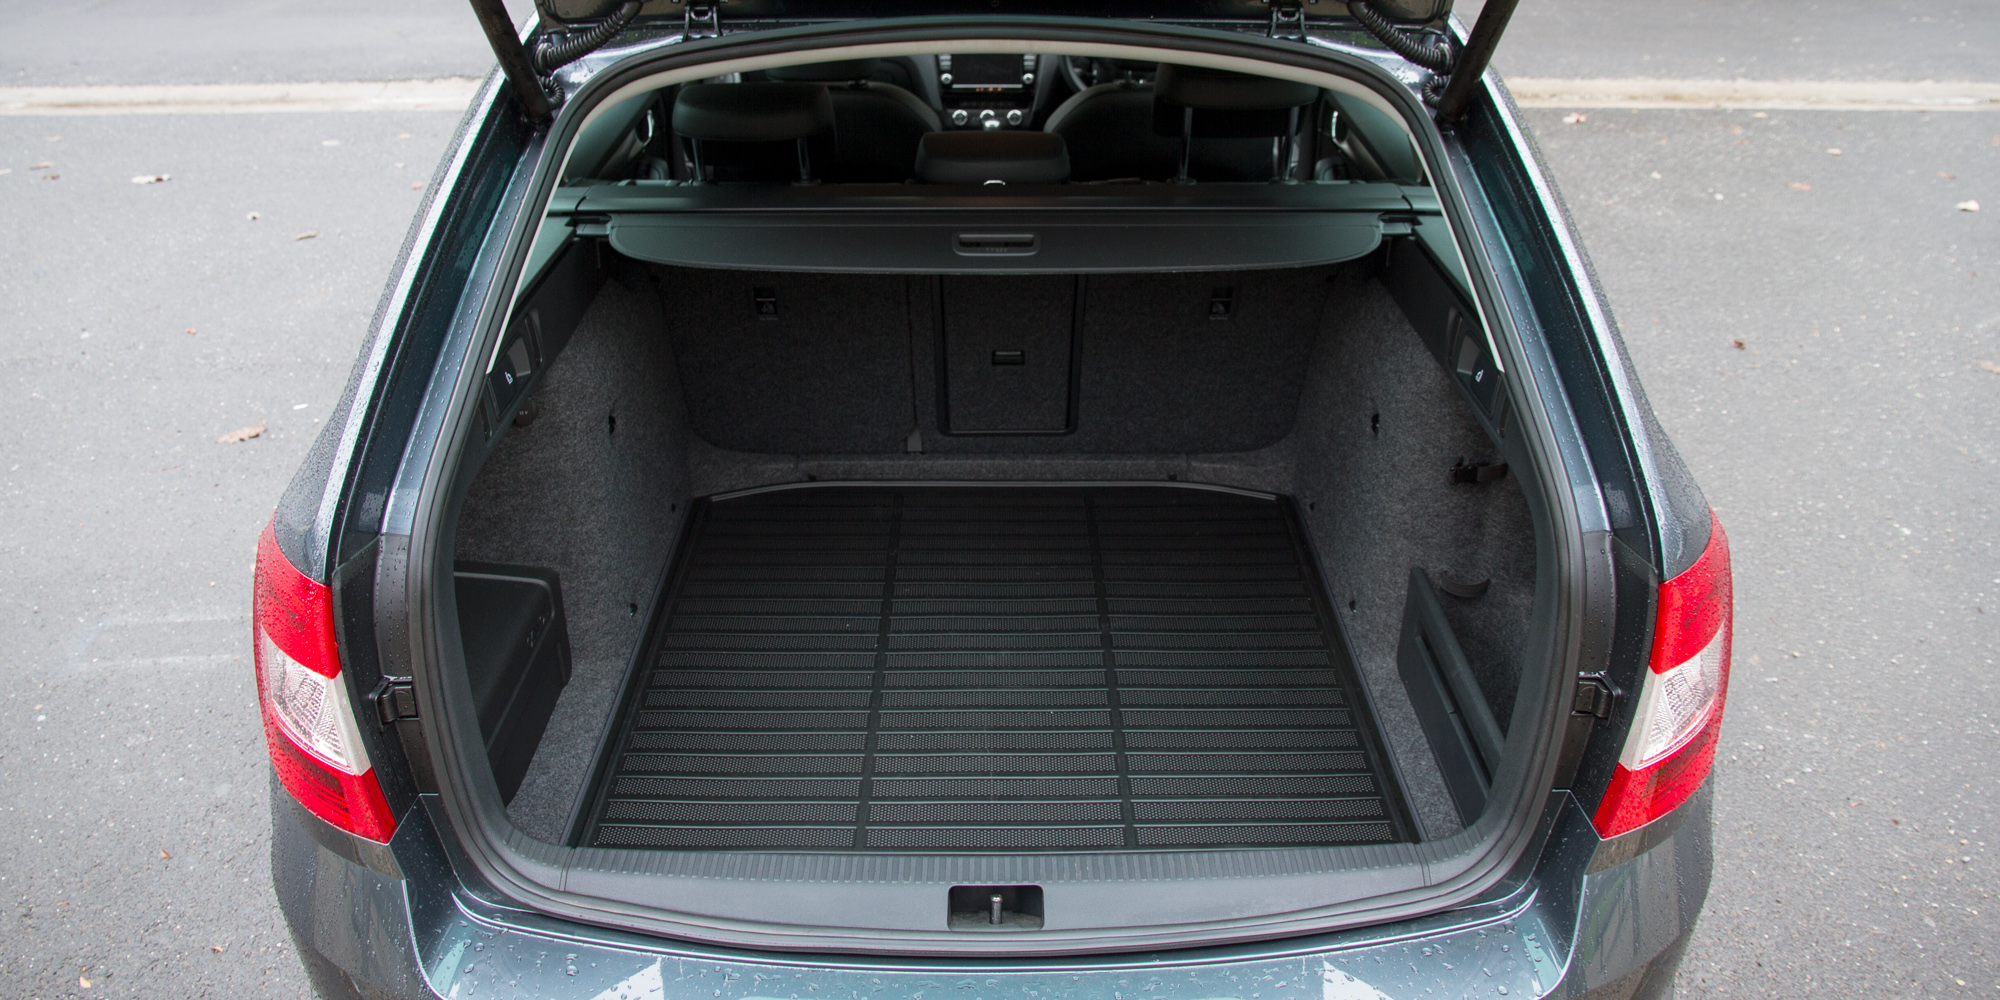 2016 Skoda Octavia Scout Interior Cargo Space (Photo 11 of 23)